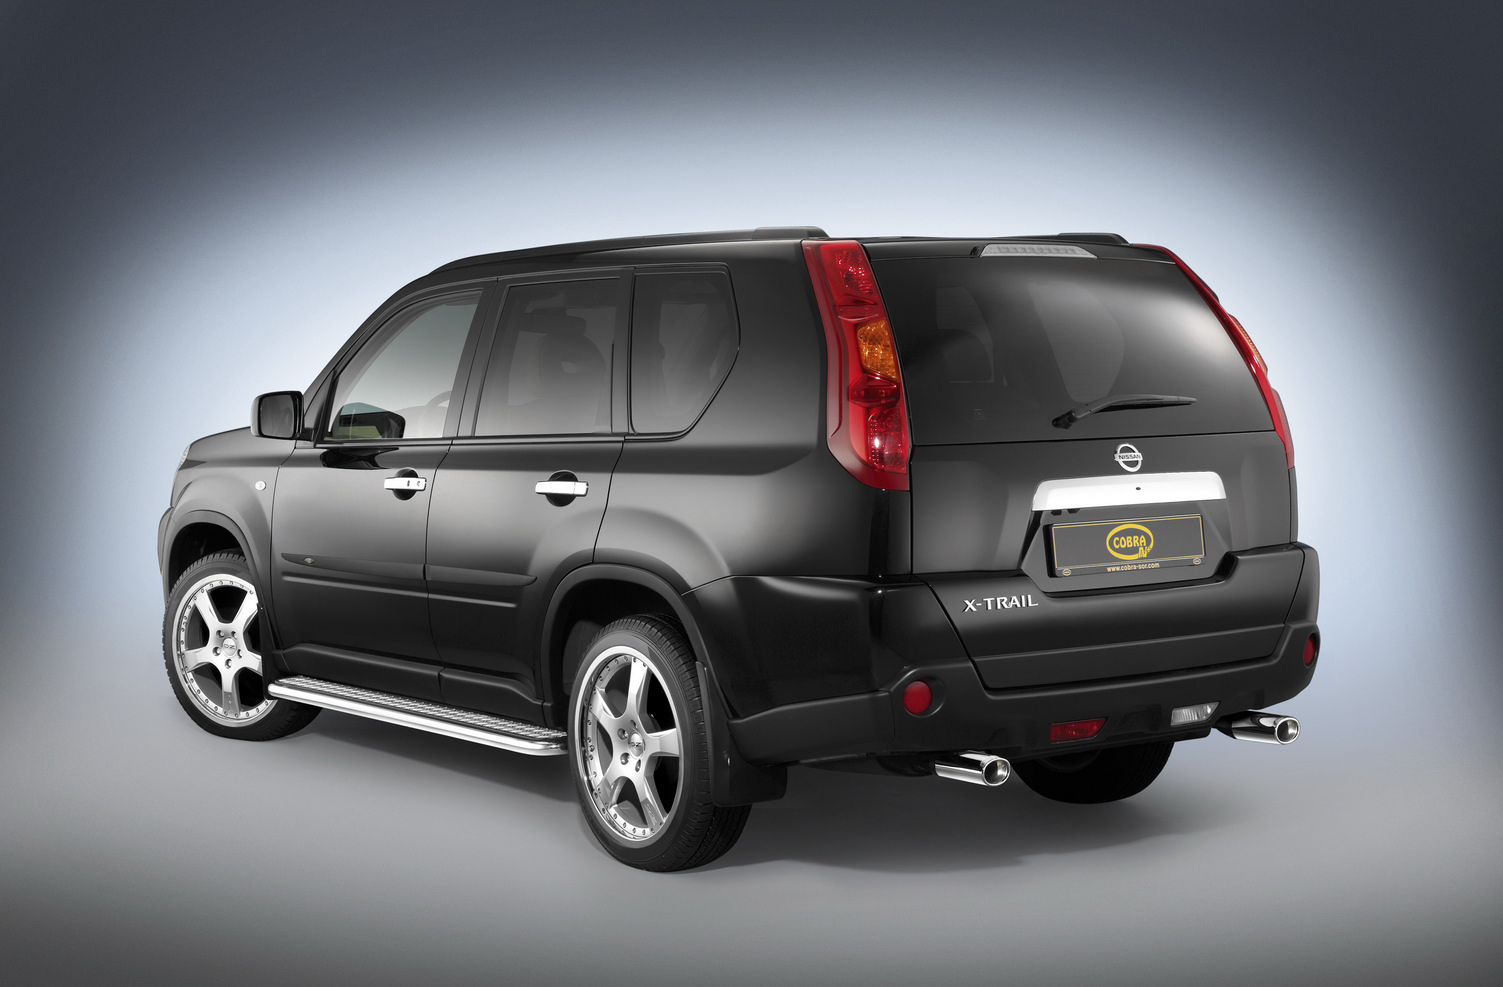 2008 nissan x trail review price. Black Bedroom Furniture Sets. Home Design Ideas